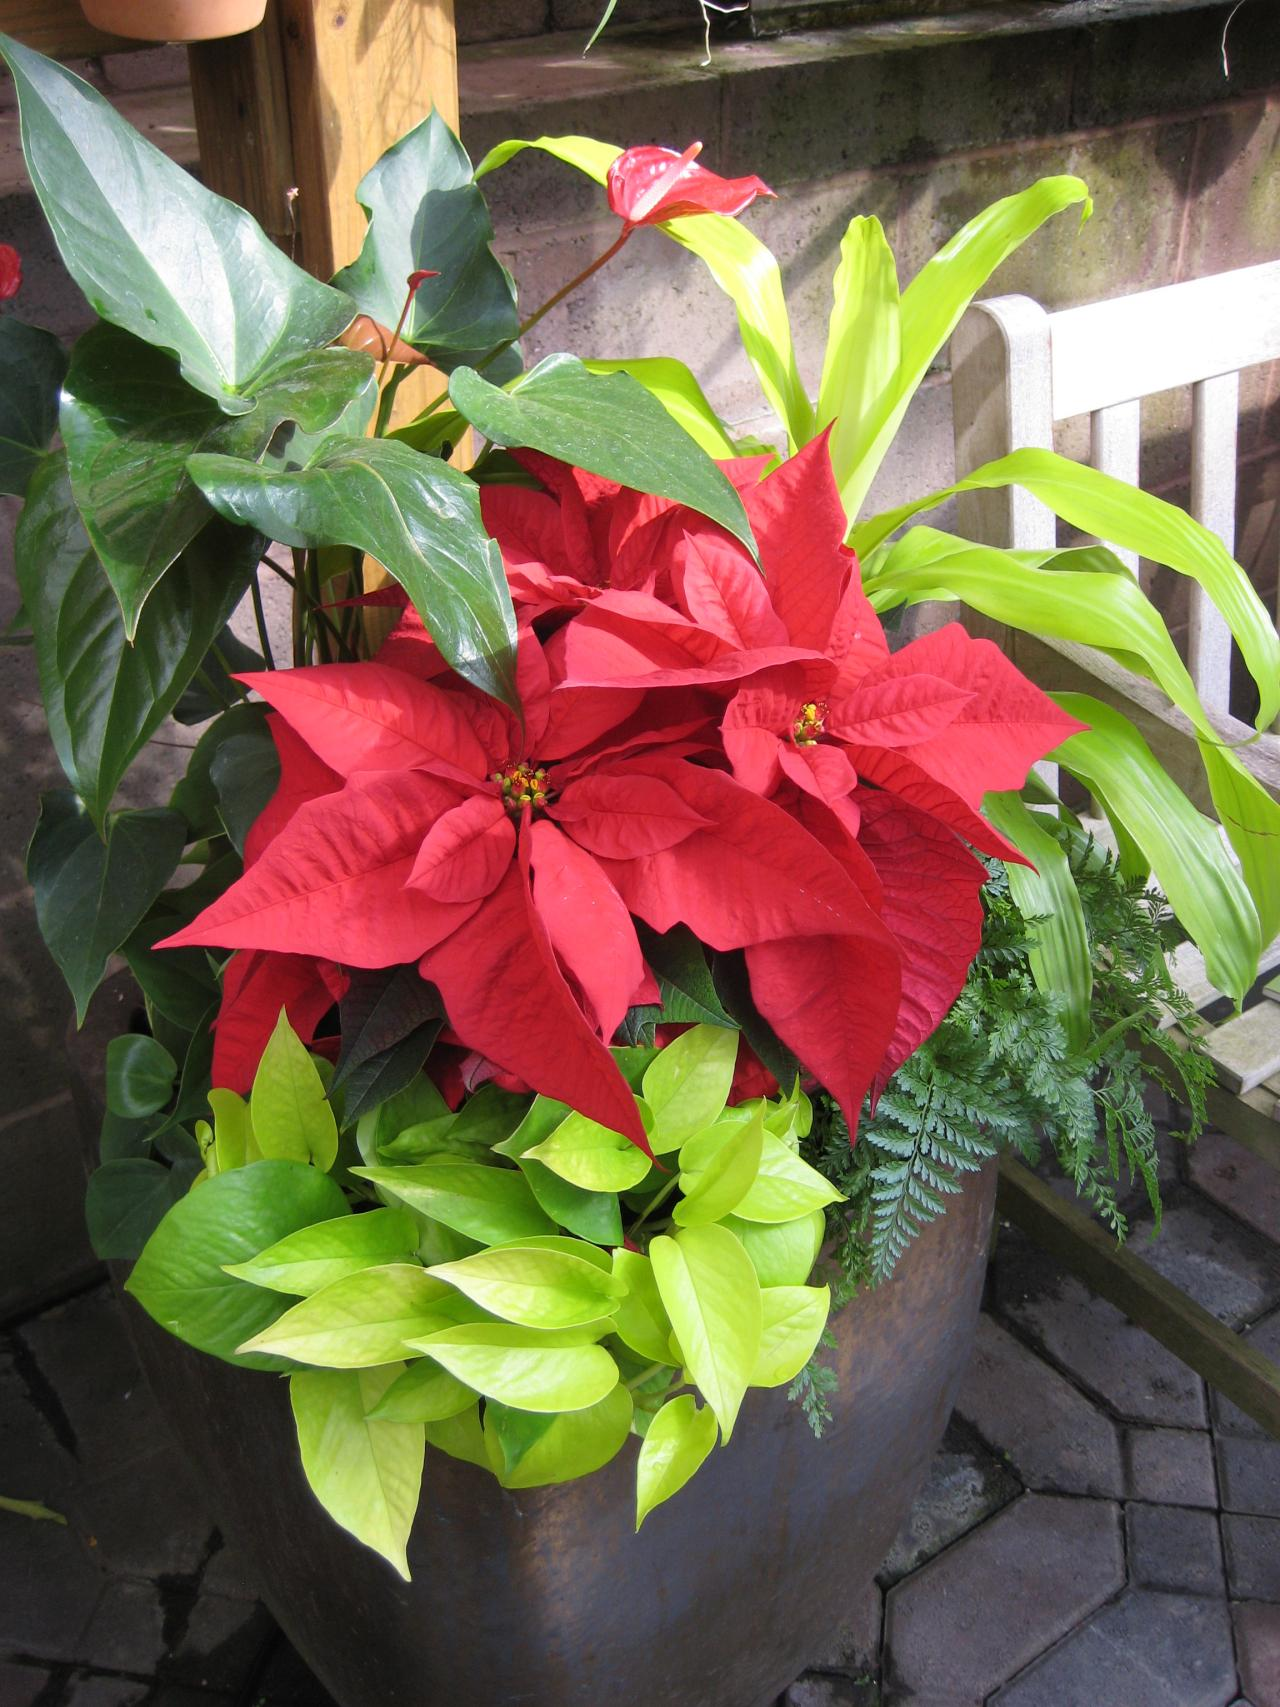 Mix Houseplants With Holiday Plants and Flowers | HGTV on holiday plants, life plants, amazon plants, thanksgiving plants, more plants, halloween plants, indoor plants, photography plants, food plants, school plants, wedding plants, tumblr plants, chocolate plants, forever plants, love plants, diy plants, gardening plants, family plants, summer plants, art plants,